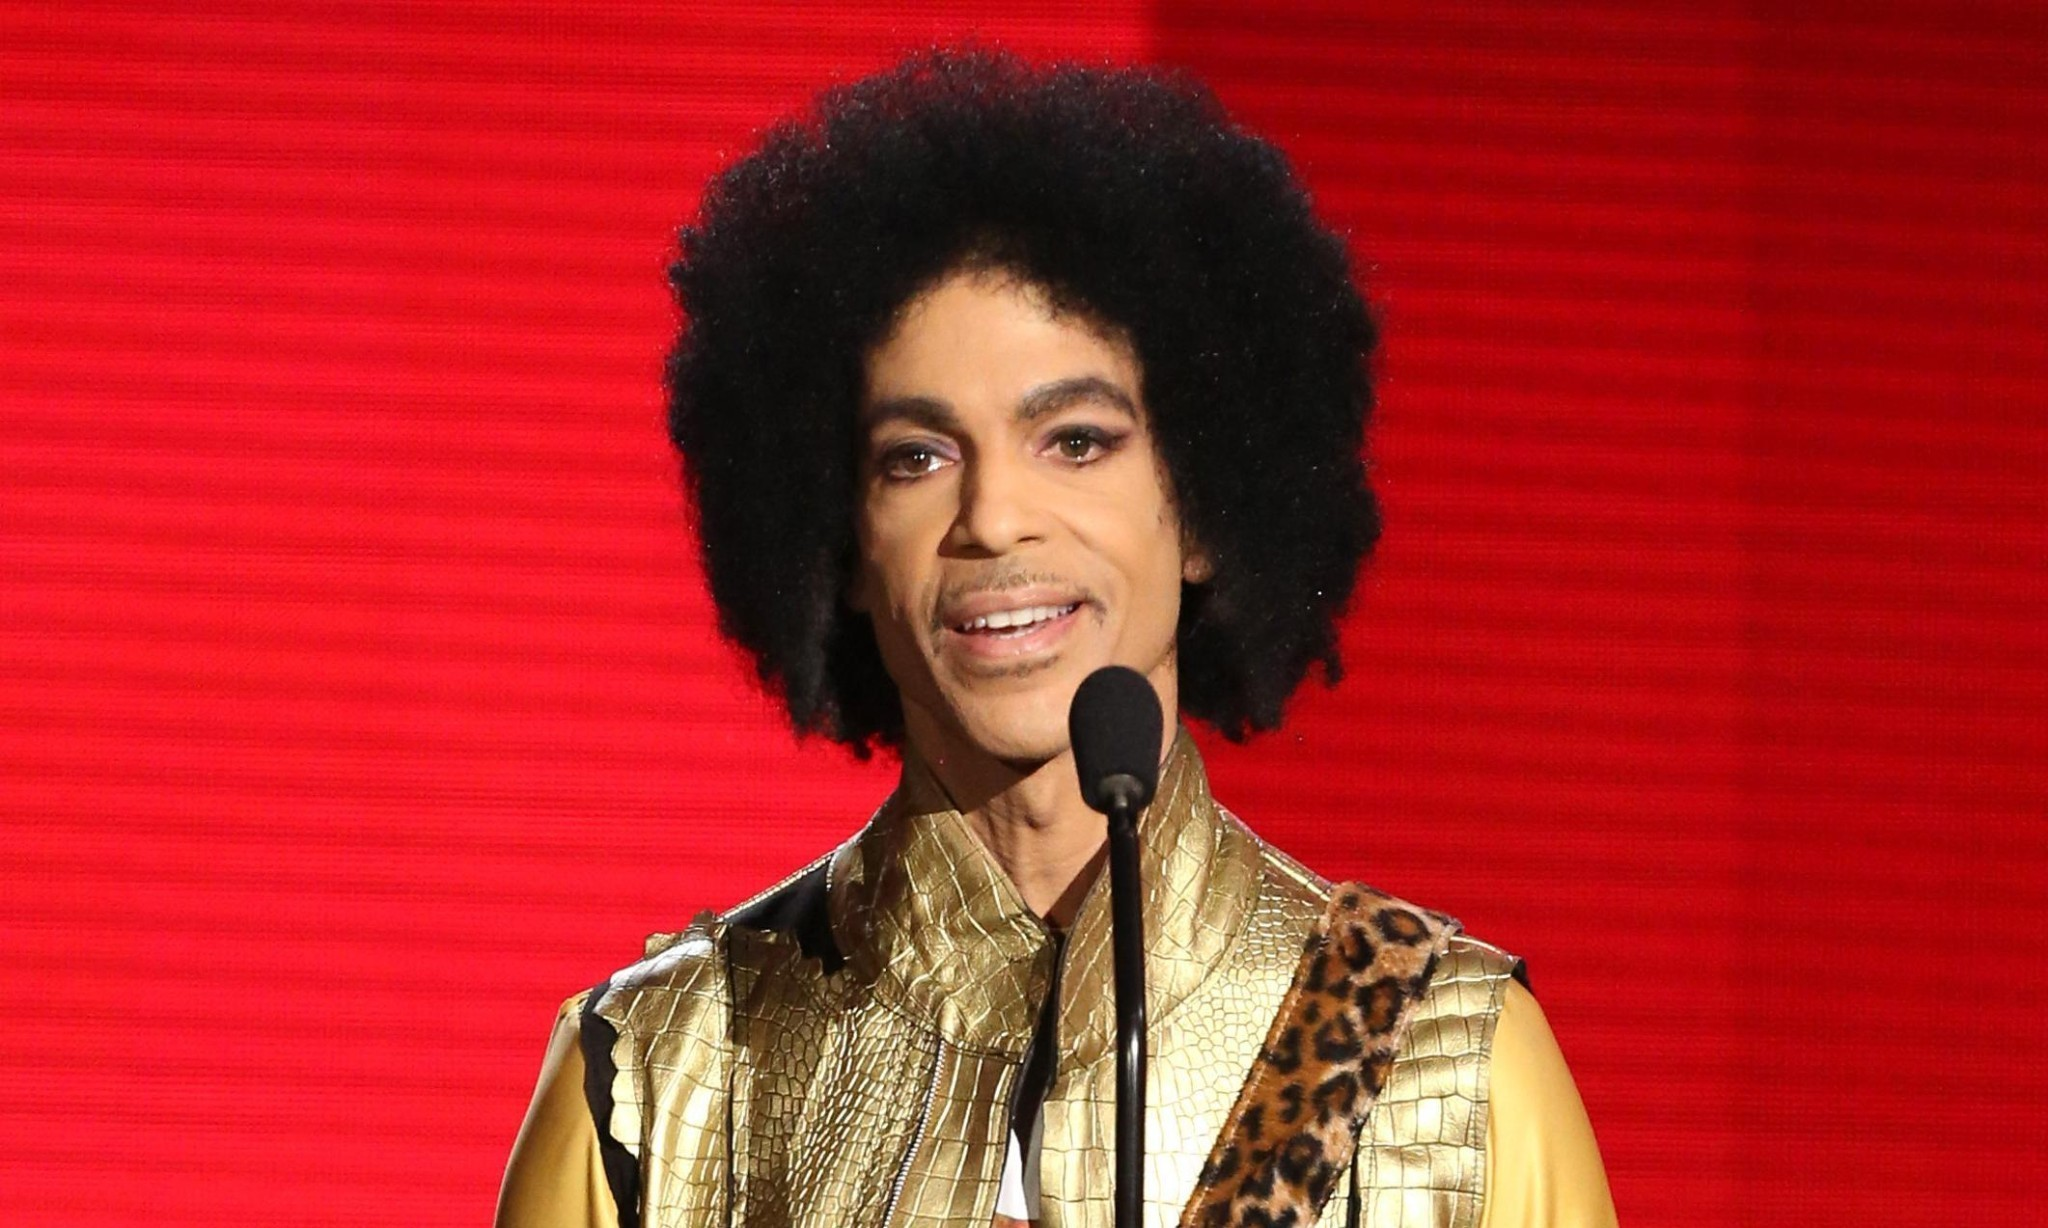 Tests confirm Prince died of opioid overdose, police official says